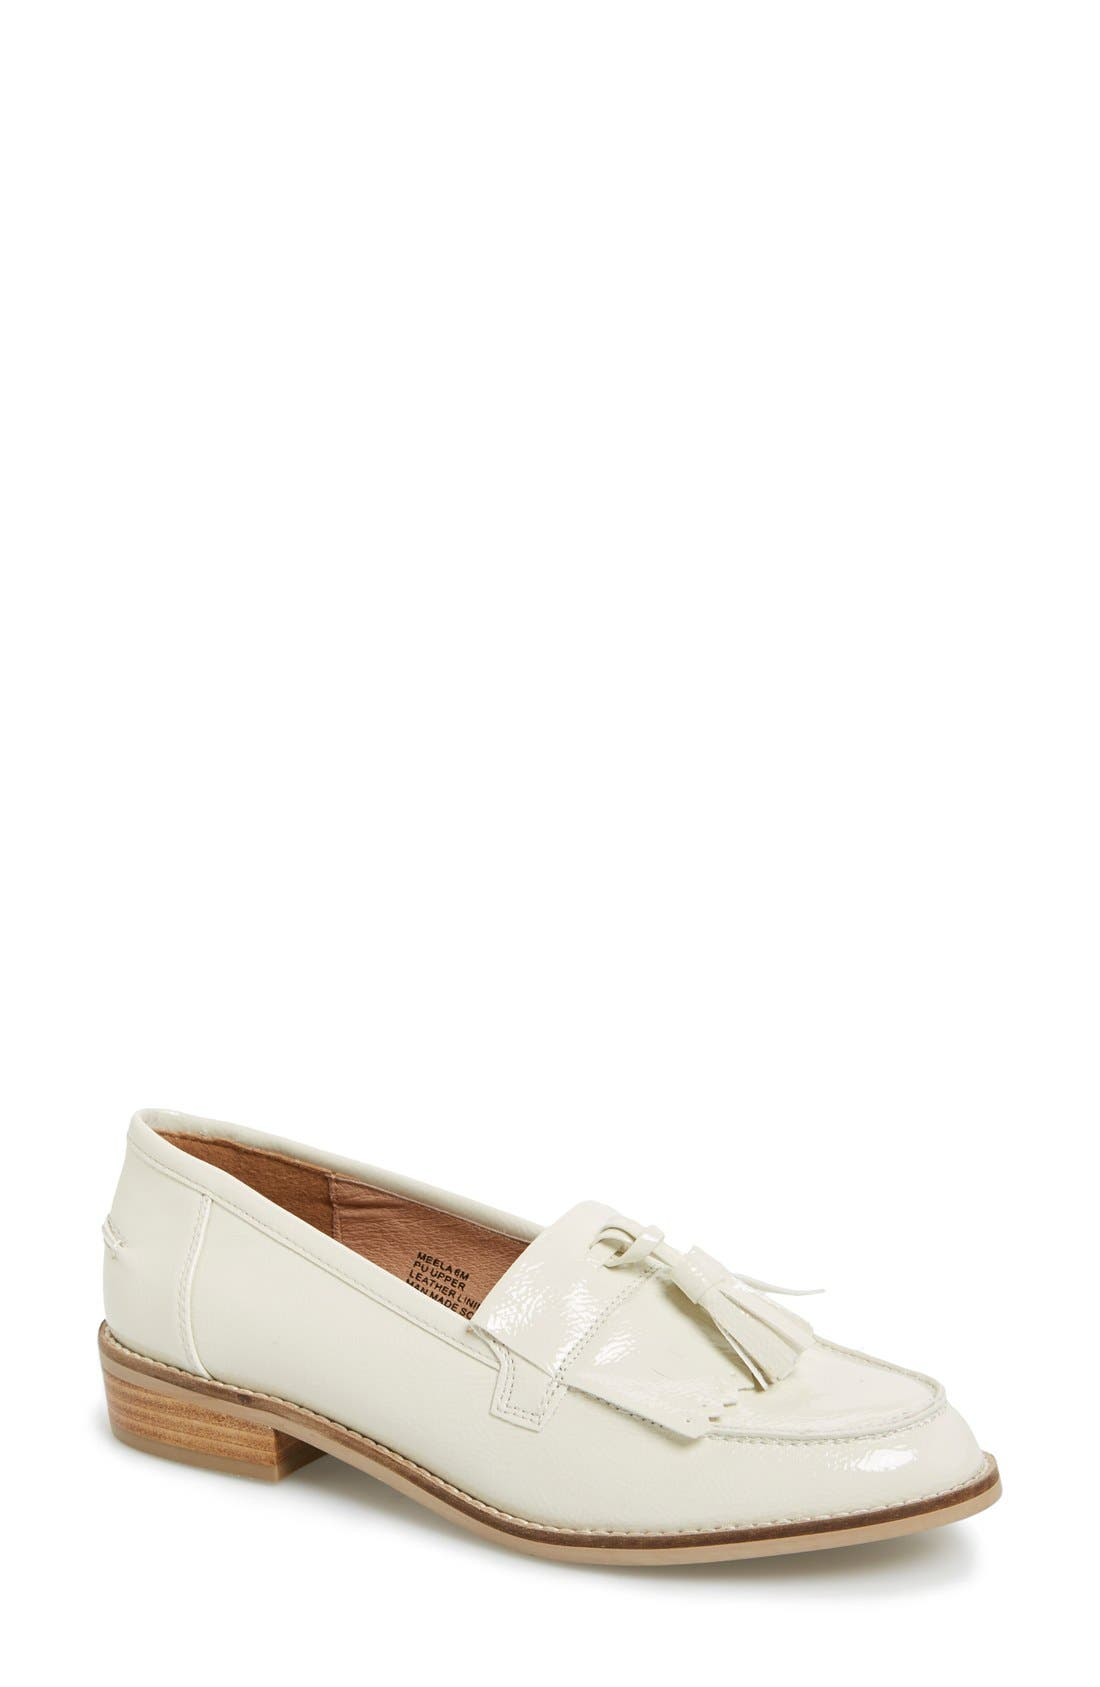 Alternate Image 1 Selected - Steve Madden 'Meela' Loafer (Women)